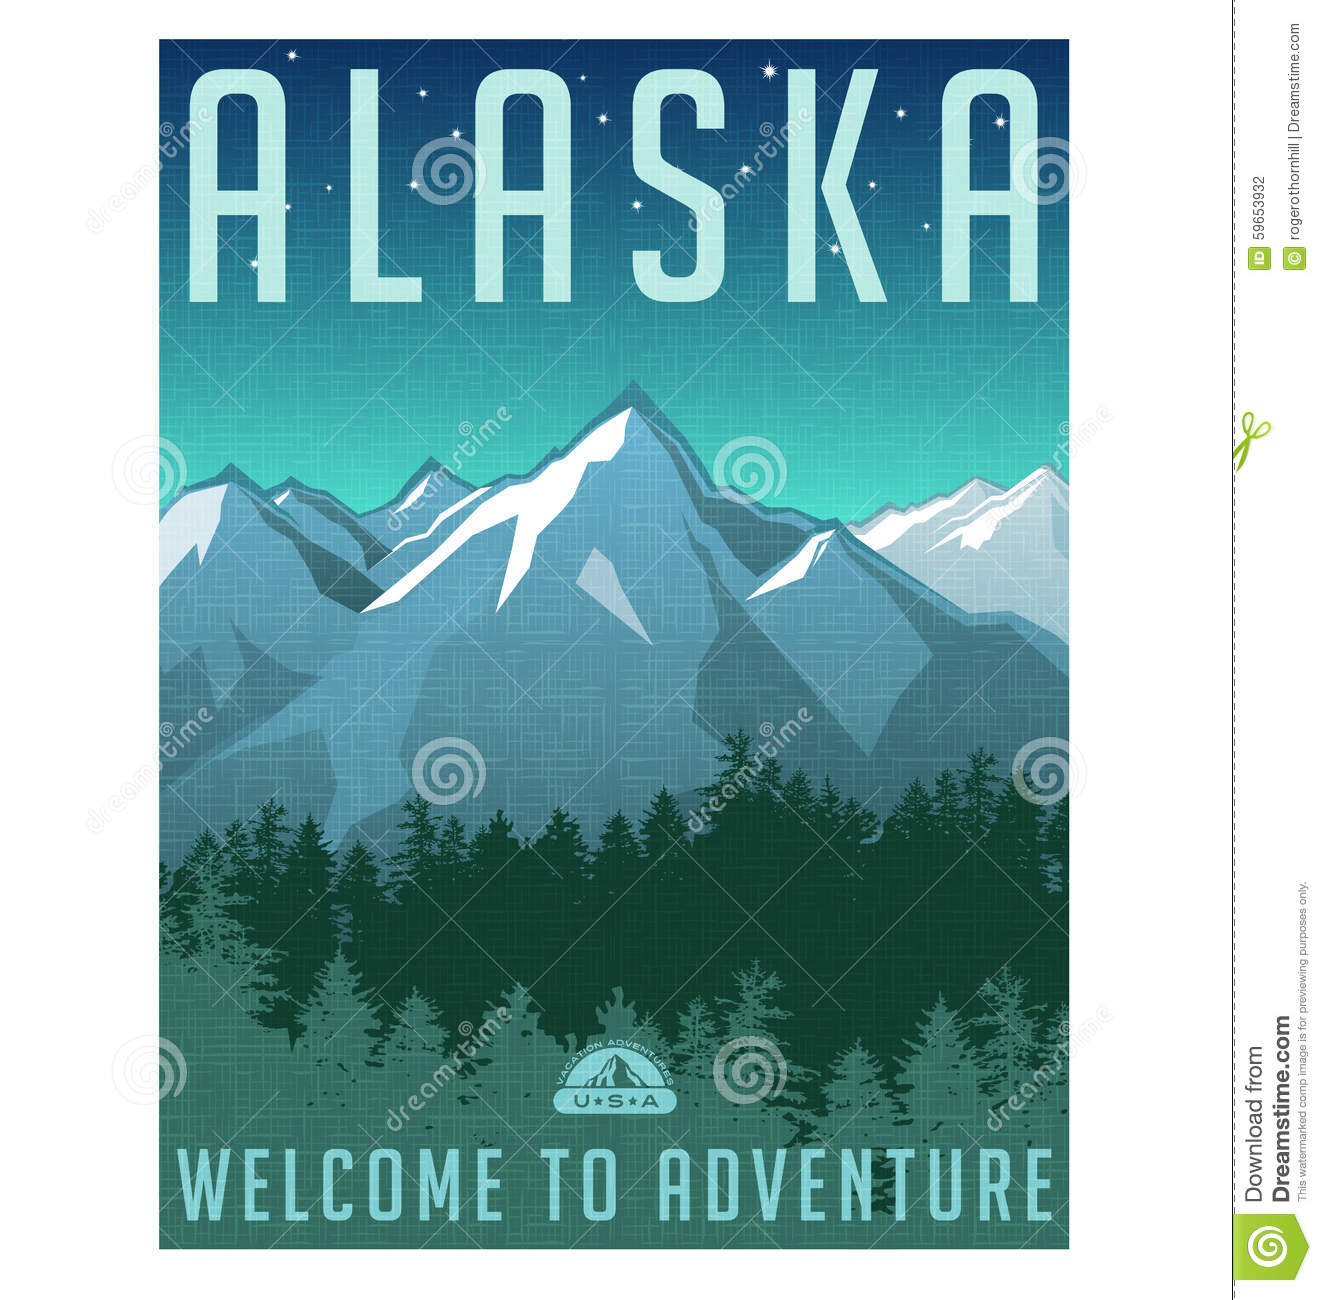 Poster design landscape - Retro Style Travel Poster Or Sticker Alaska Stock Photography